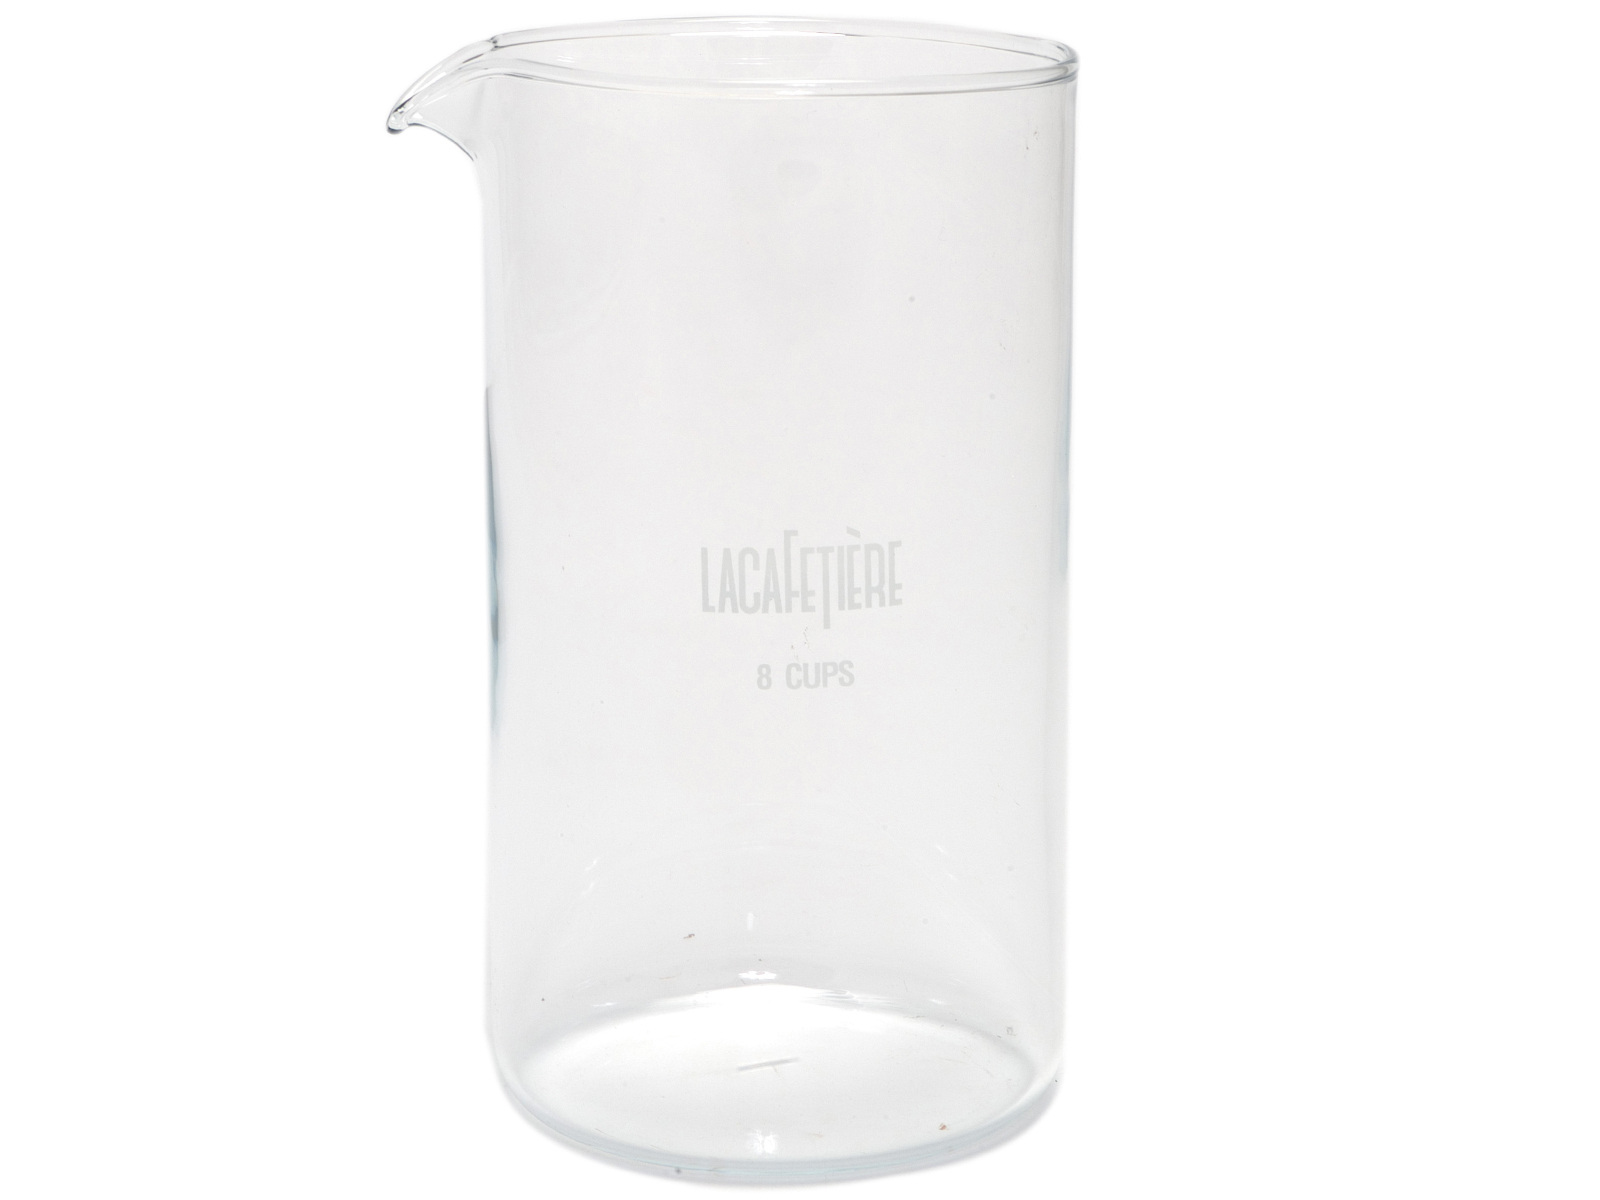 La Cafetiere 8 Cup Cafetiere Replacement Beaker